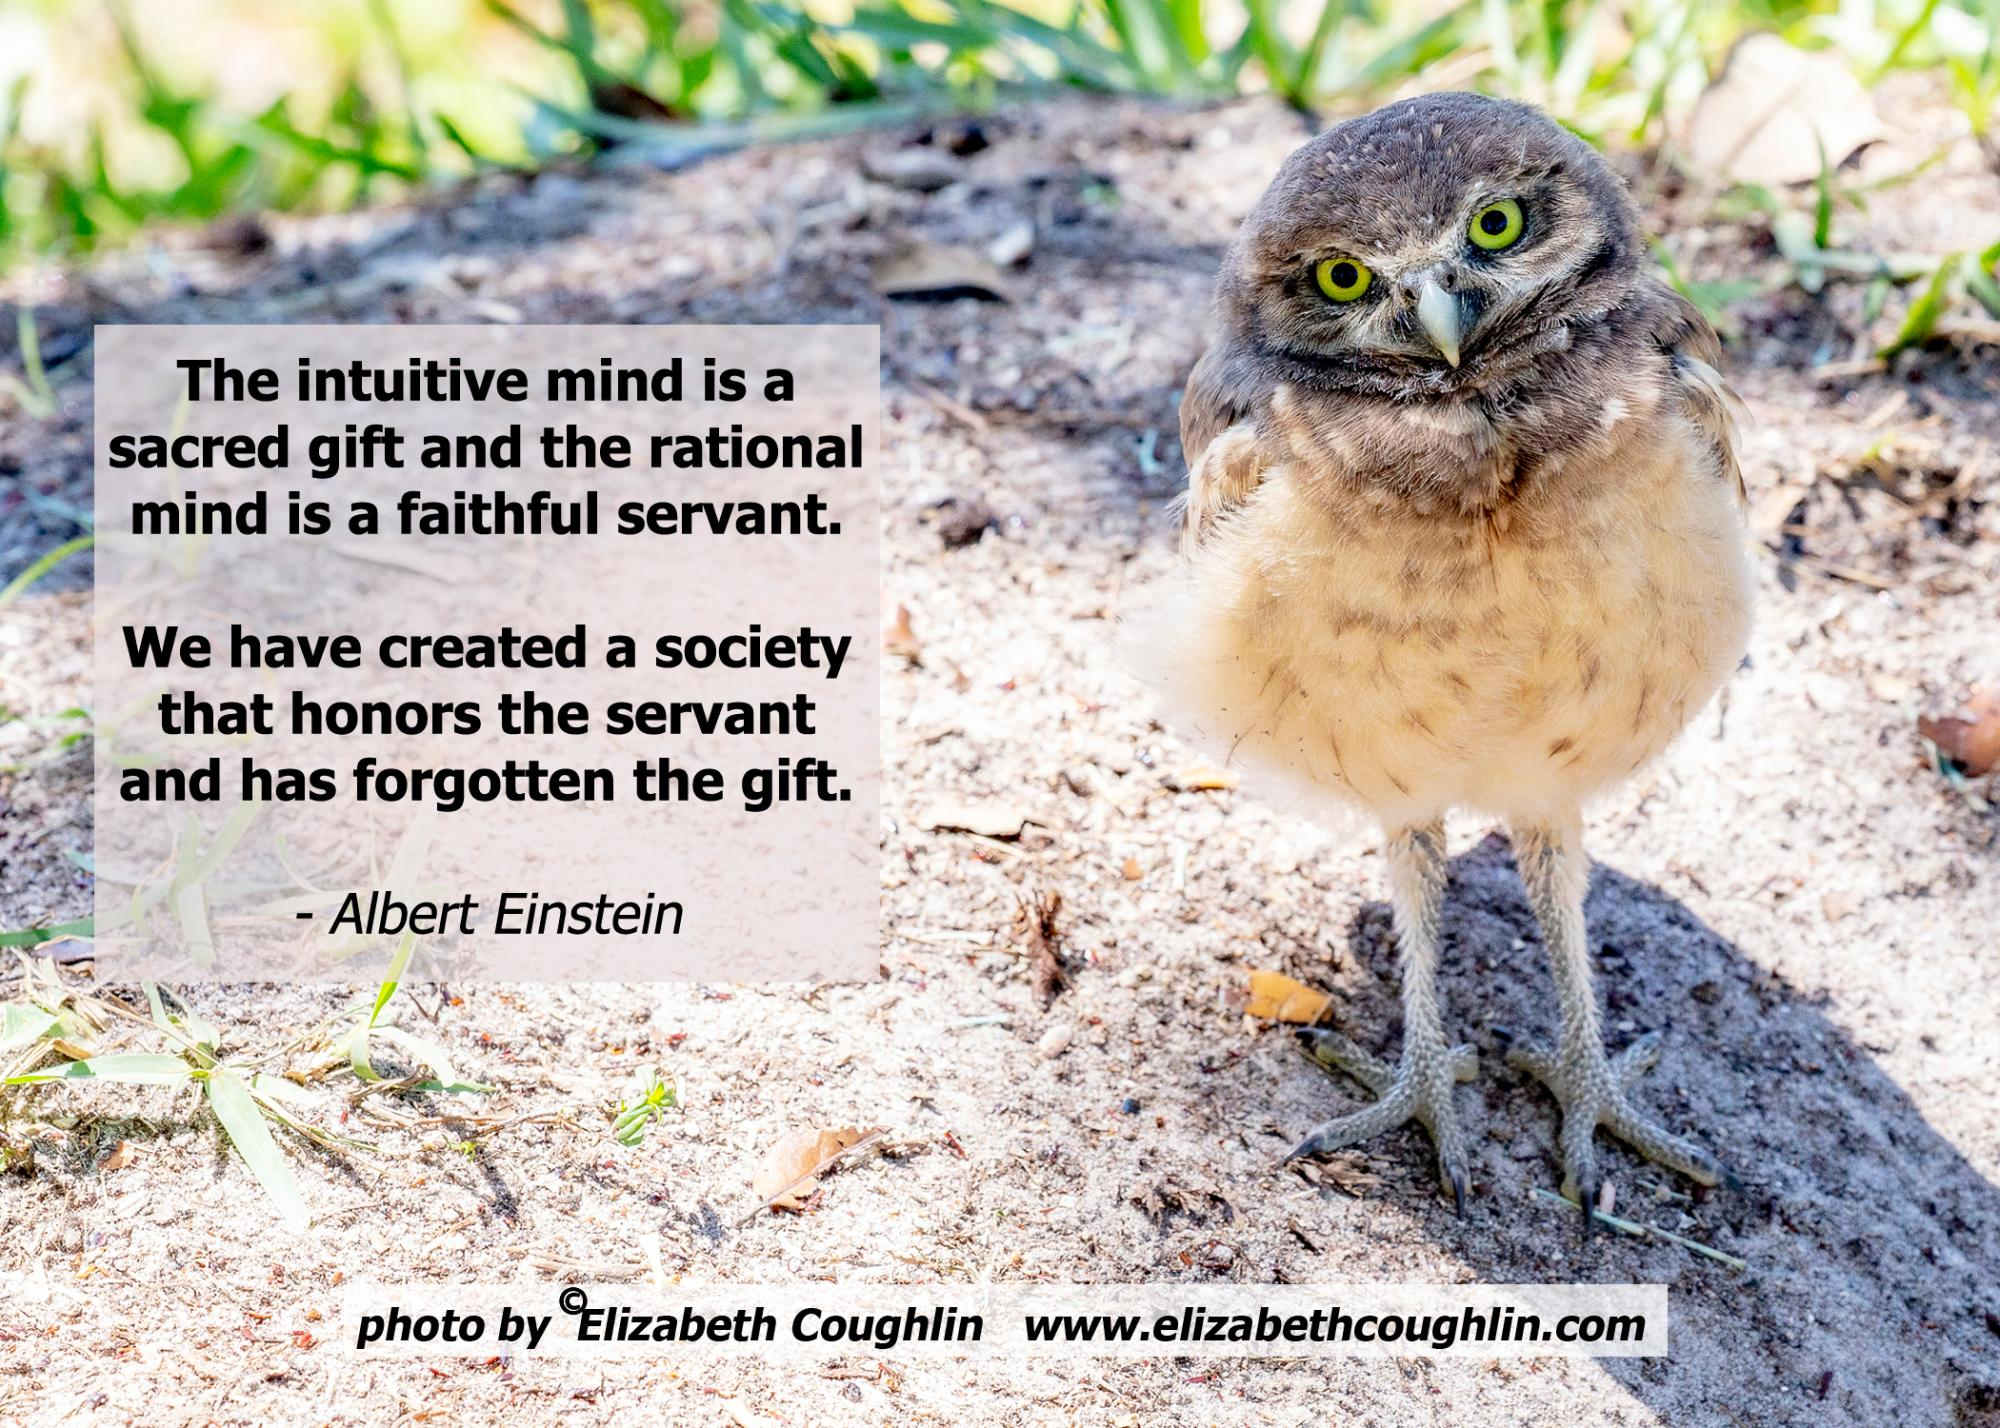 OWL_Burrowing_Einstein_intuitivemndisgift.jpg